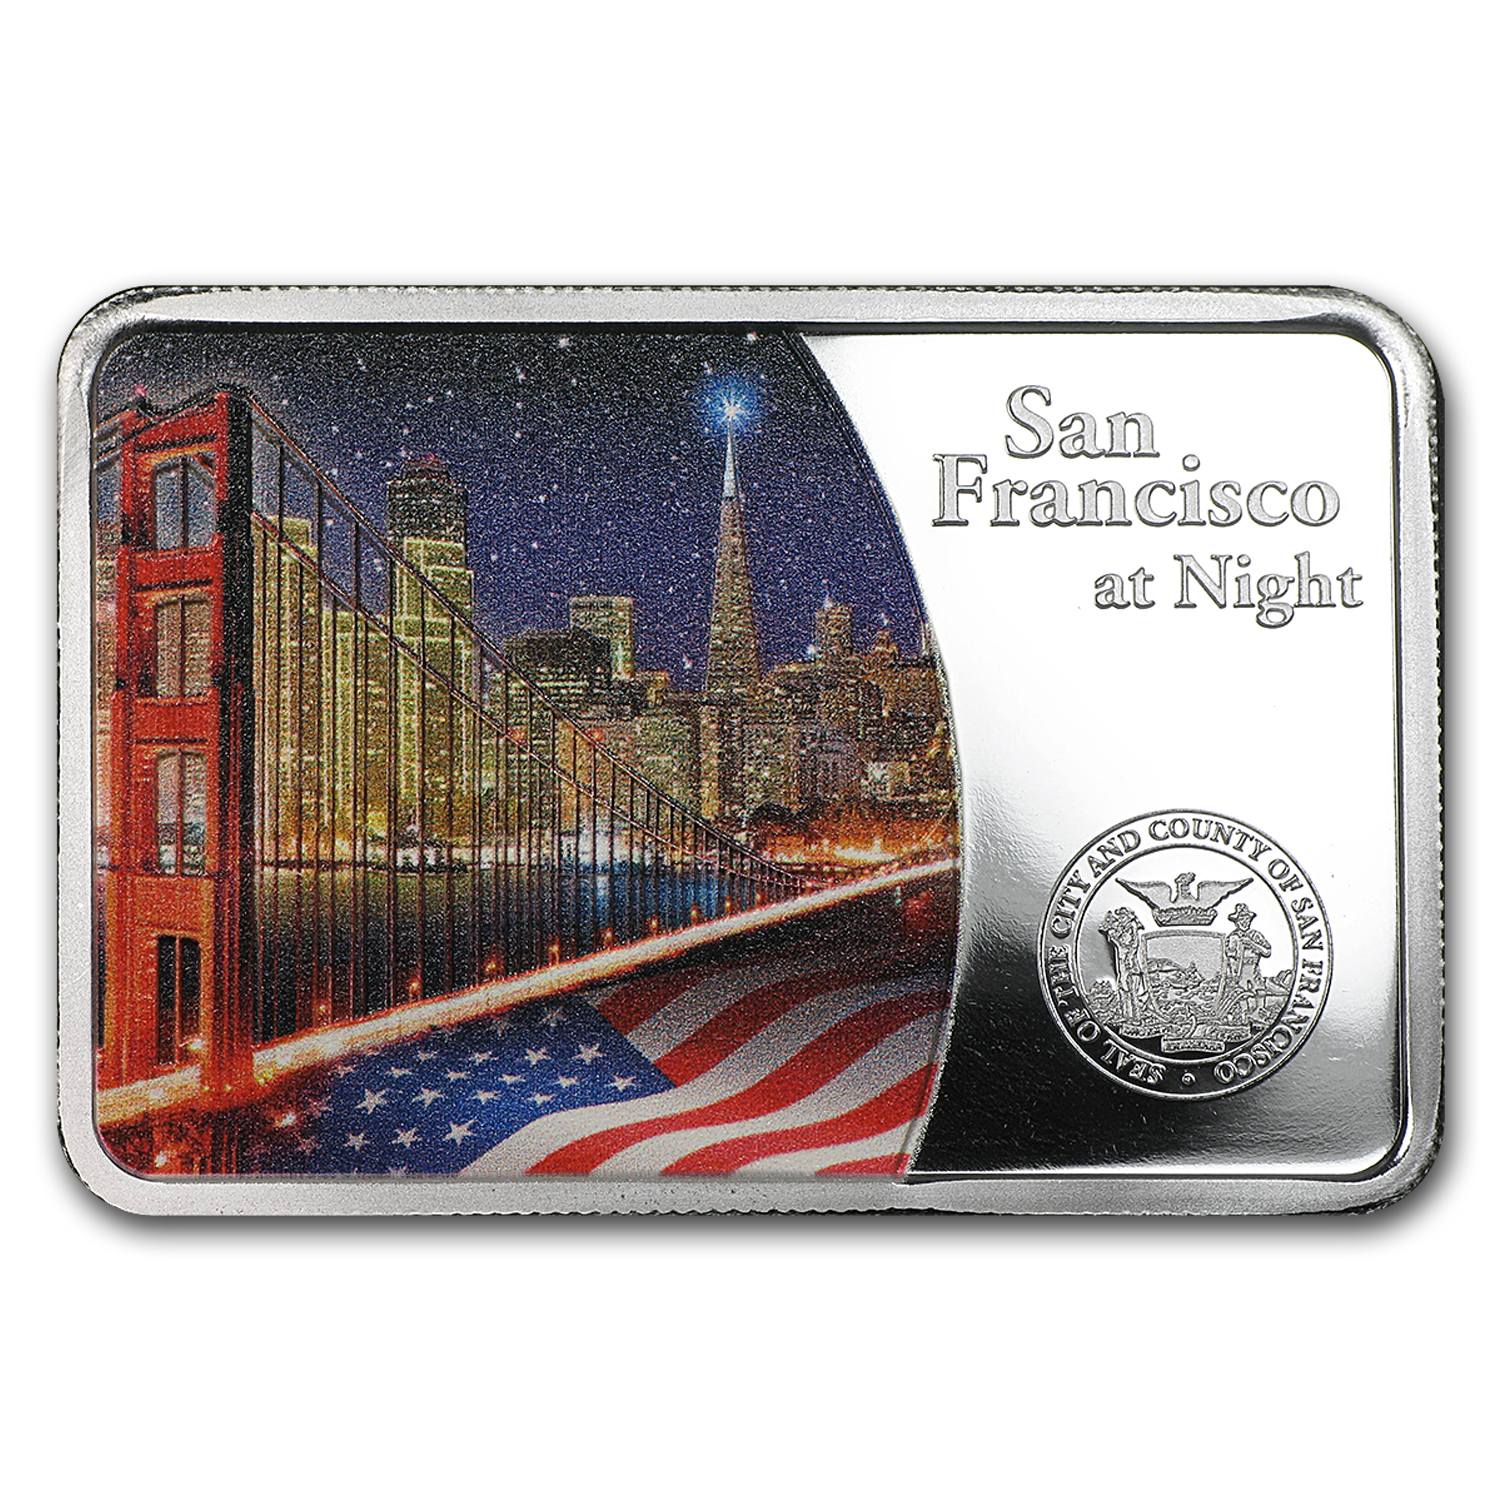 2015 Samoa Silver San Francisco at Night Coin Bar Proof